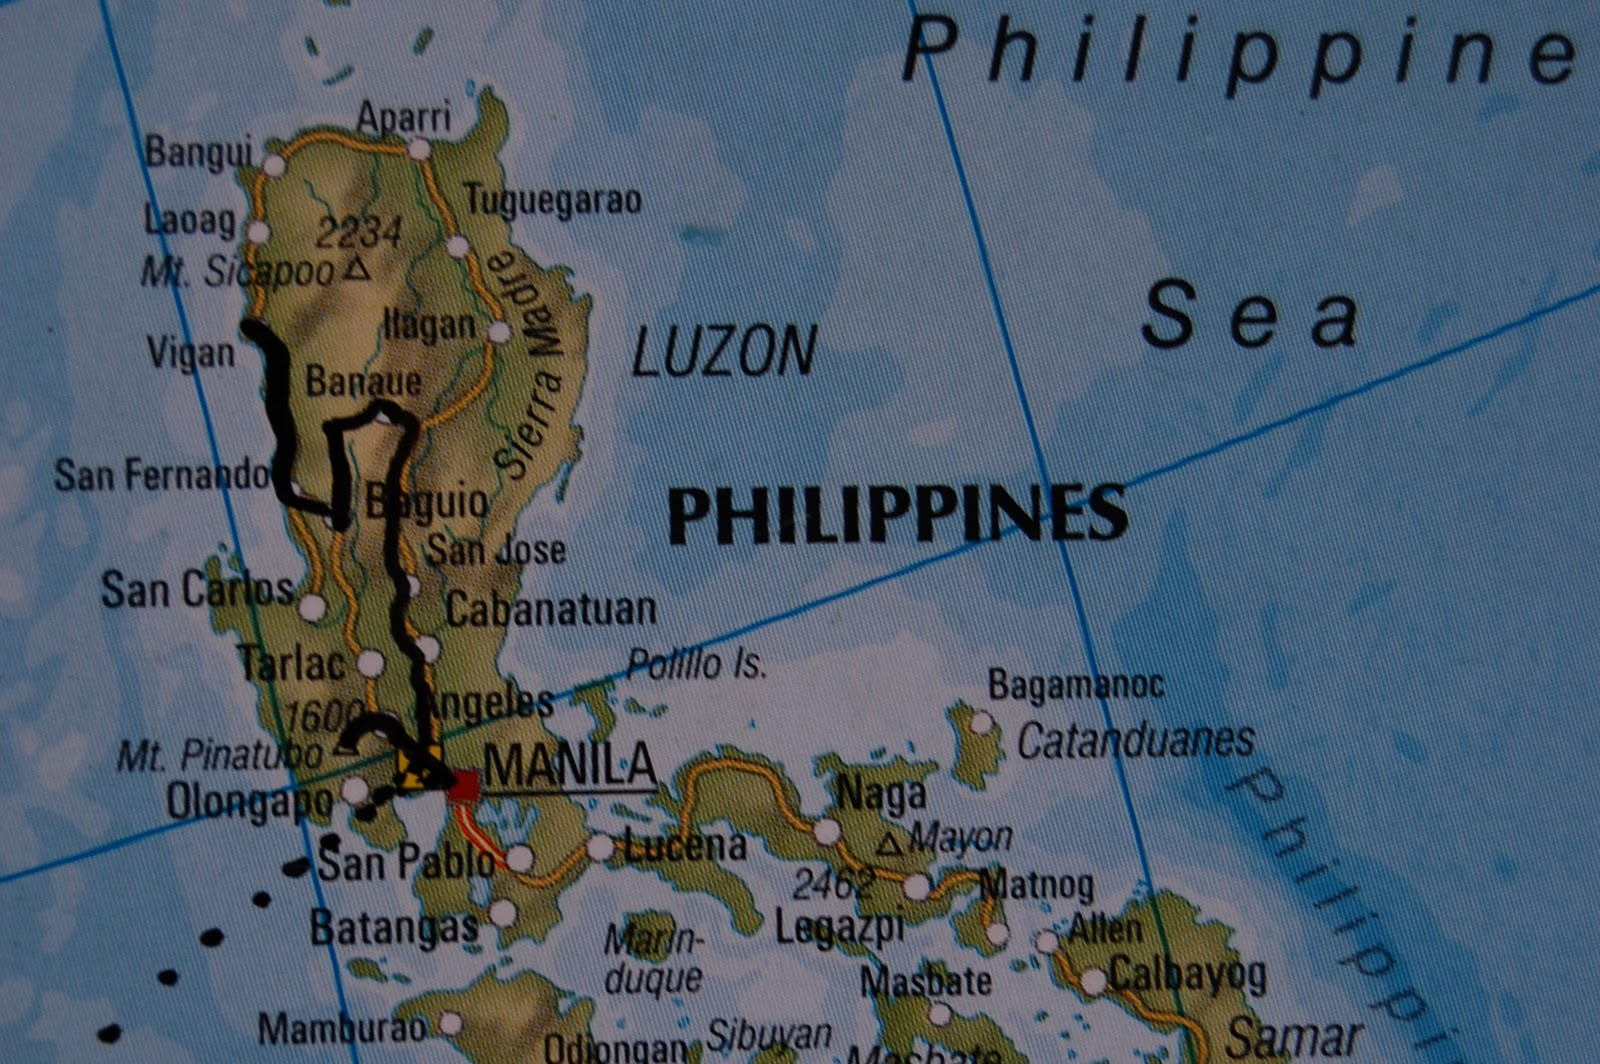 We hand picked all map manila to vigan